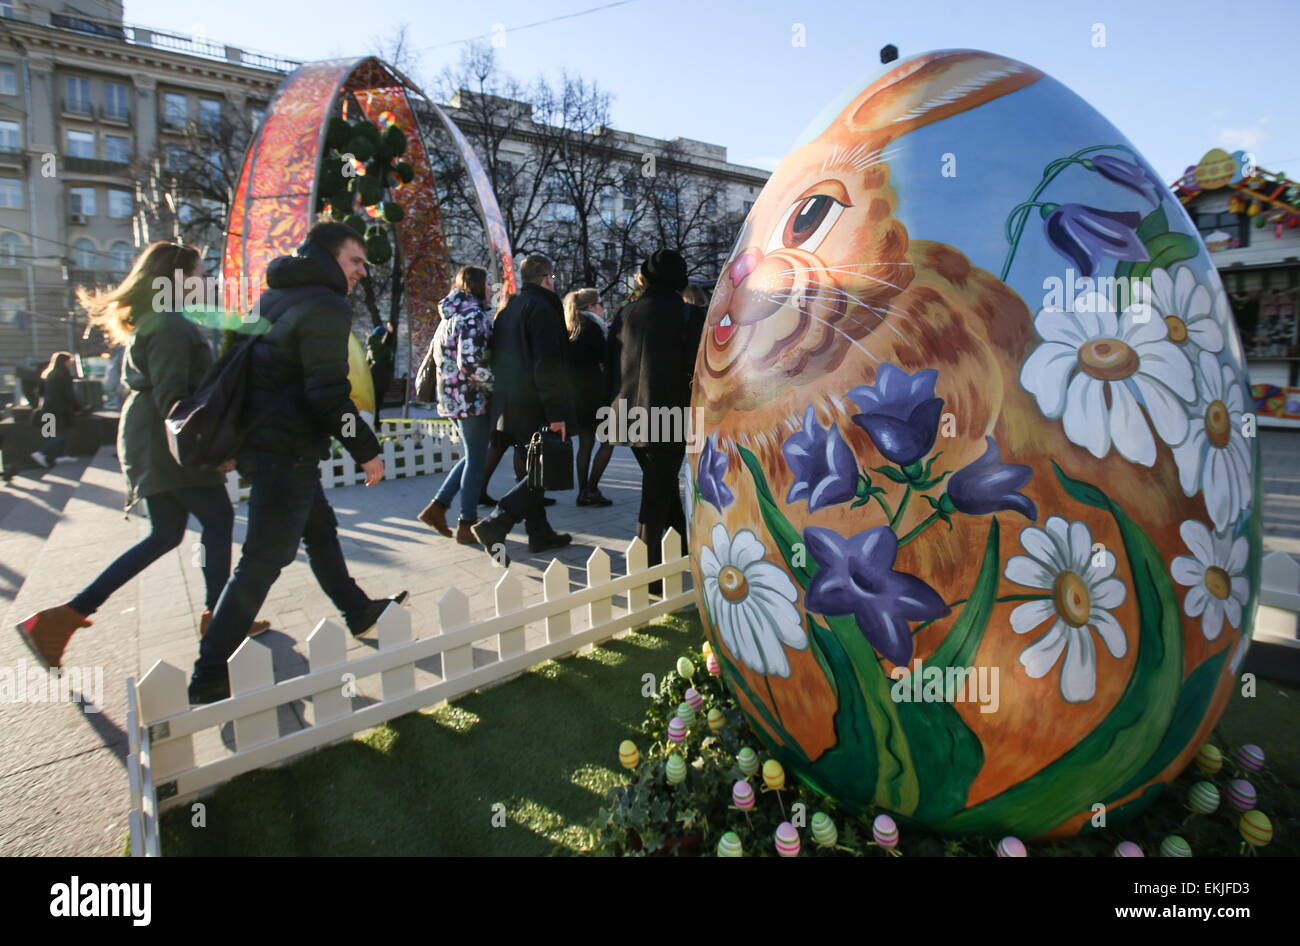 Moscow russia 10th apr 2015 people walk past giant painted egg moscow russia 10th apr 2015 people walk past giant painted egg during easter gift festival ahead of orthodox easter celebrations in central moscow negle Images